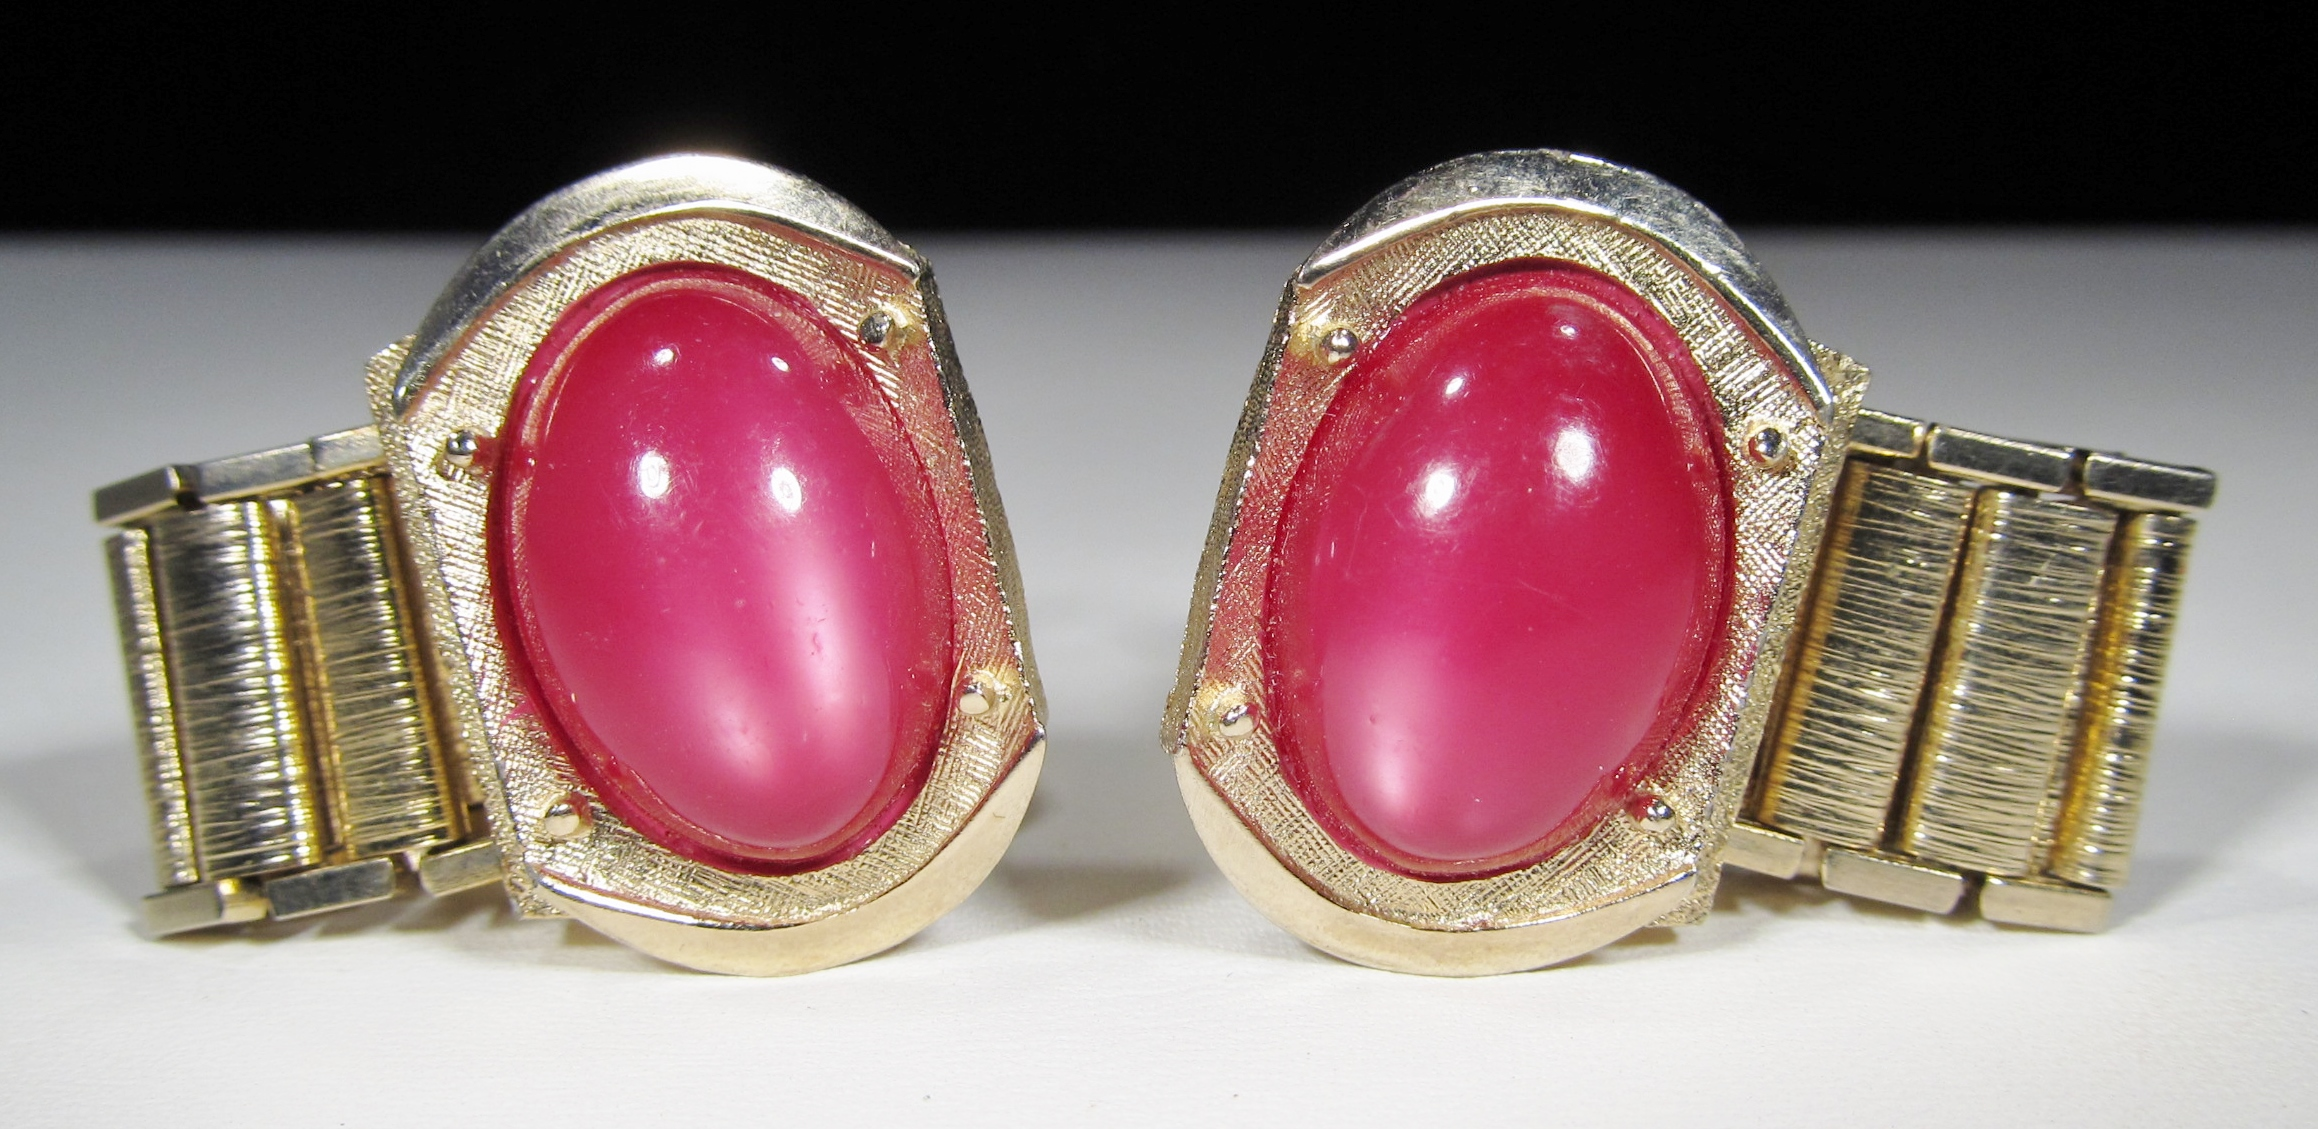 pink moonstone jewelry vintage - photo #32